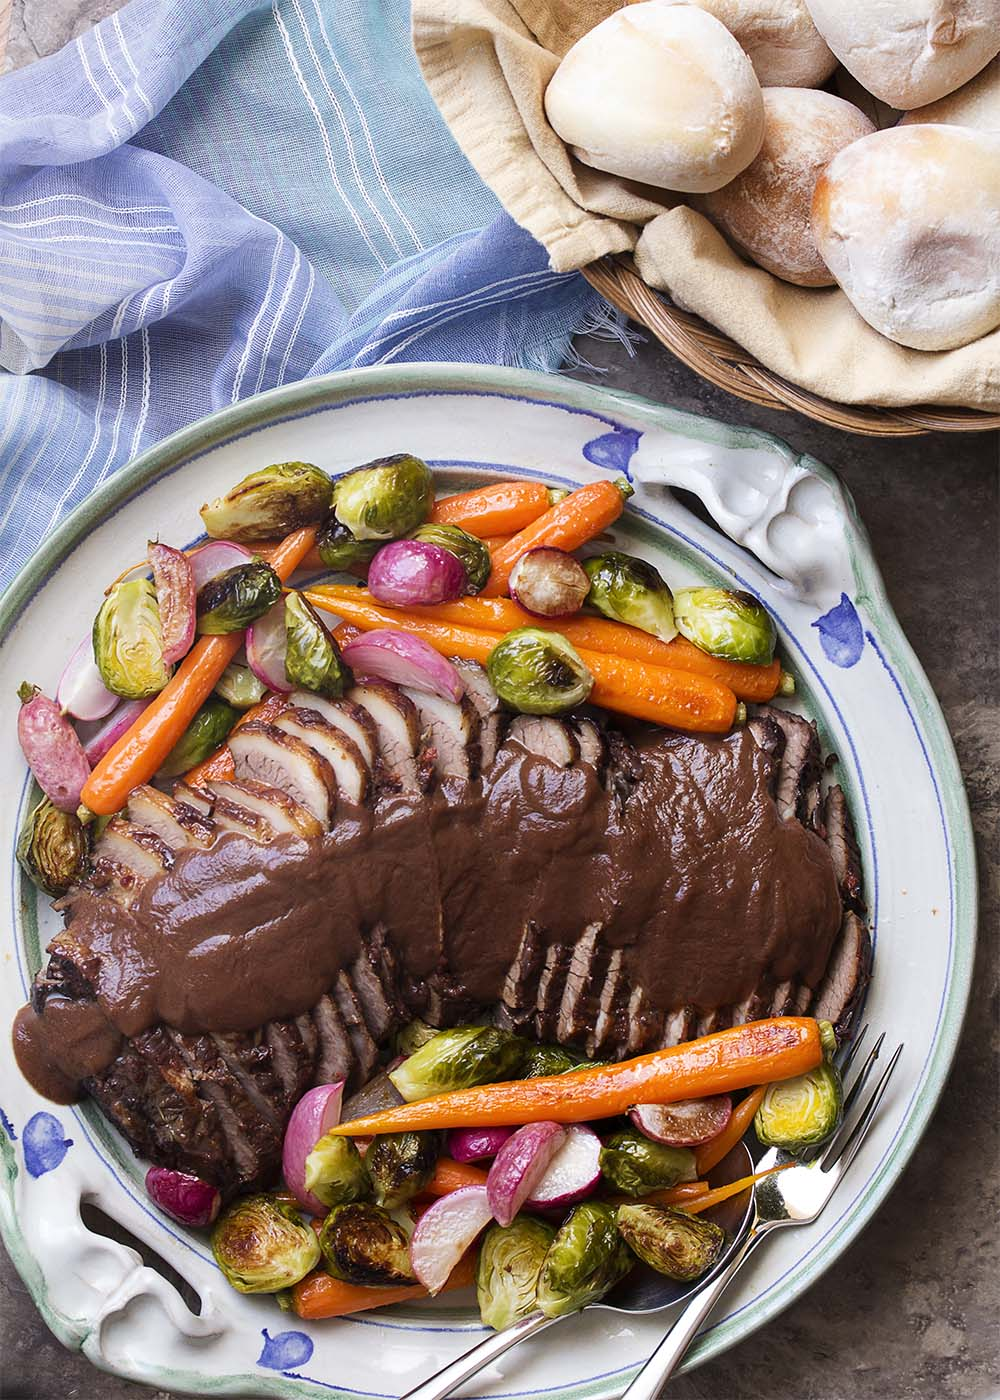 Large serving platter of sliced braised brisket covered with onion gravy and surounded by roasted vegetables.